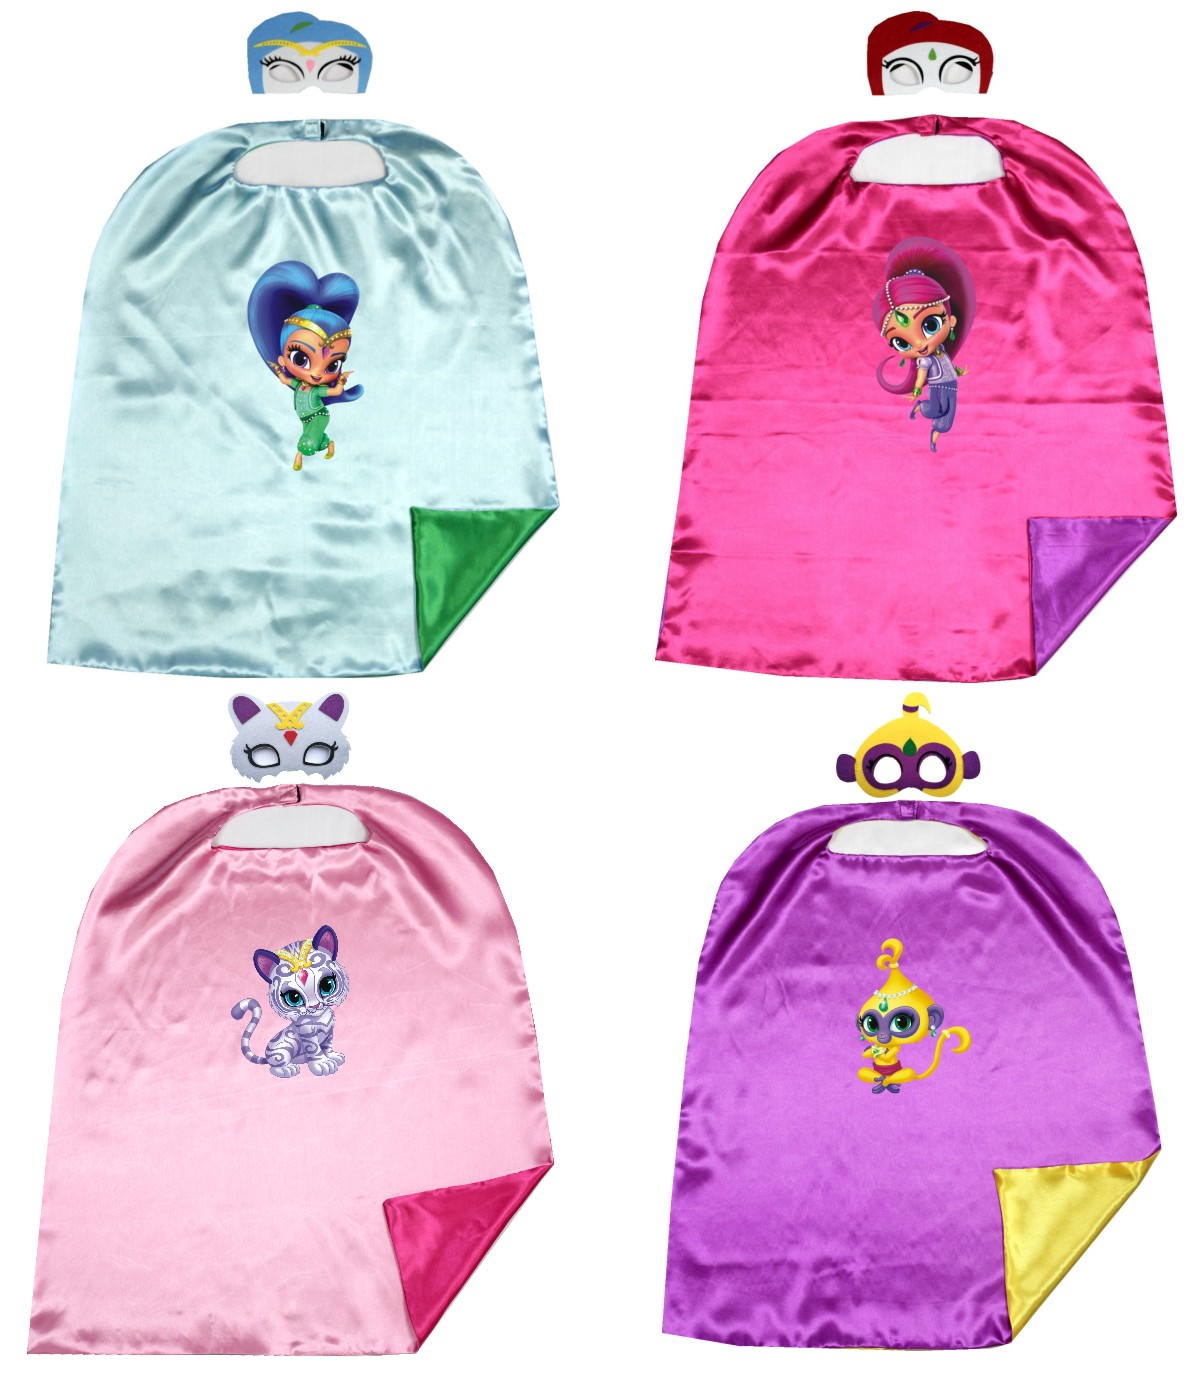 70 * 80cm 2 Layer Shimmer & Shine Capes passende Masken BirthdayParty Favor Inspired Dress Up Capes + Masken